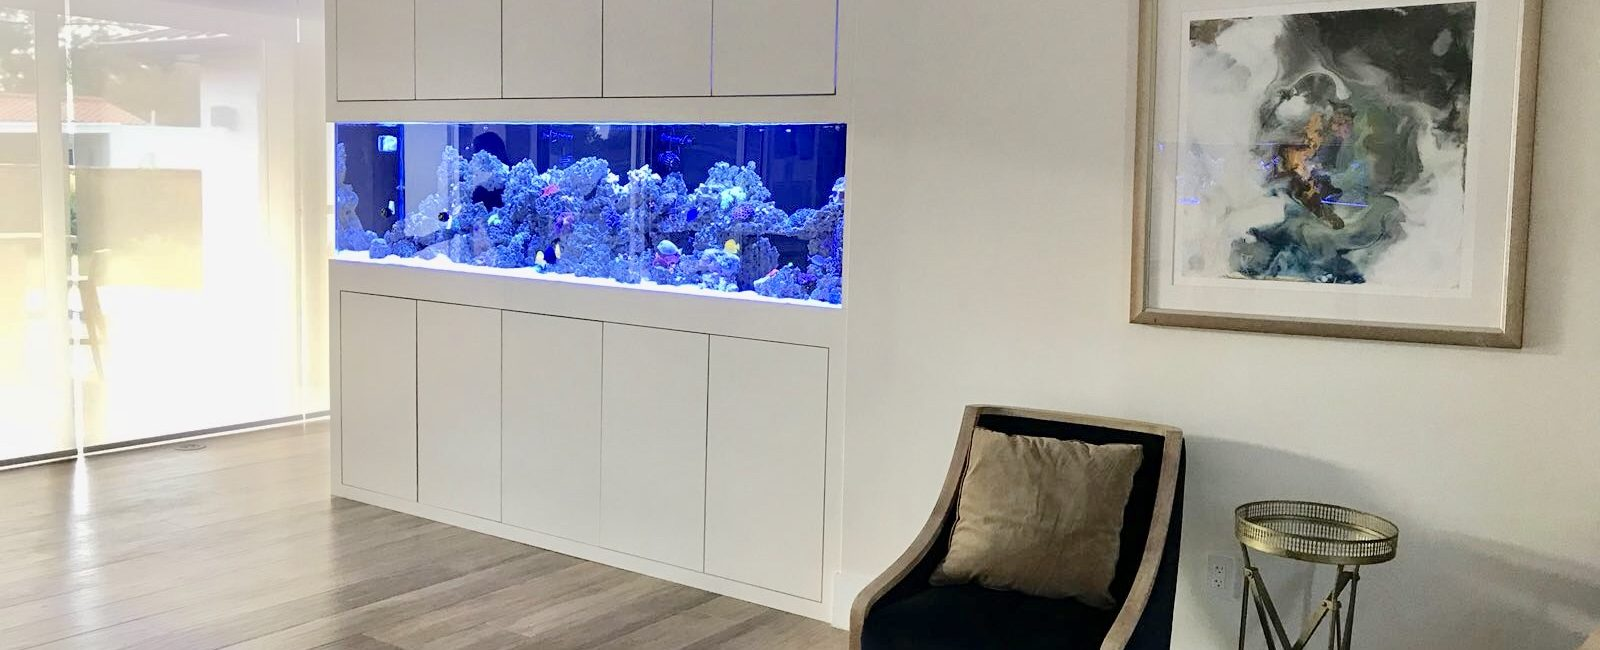 Modern Home Aquarium Ideas Adornment - Home Decorating Ideas ...